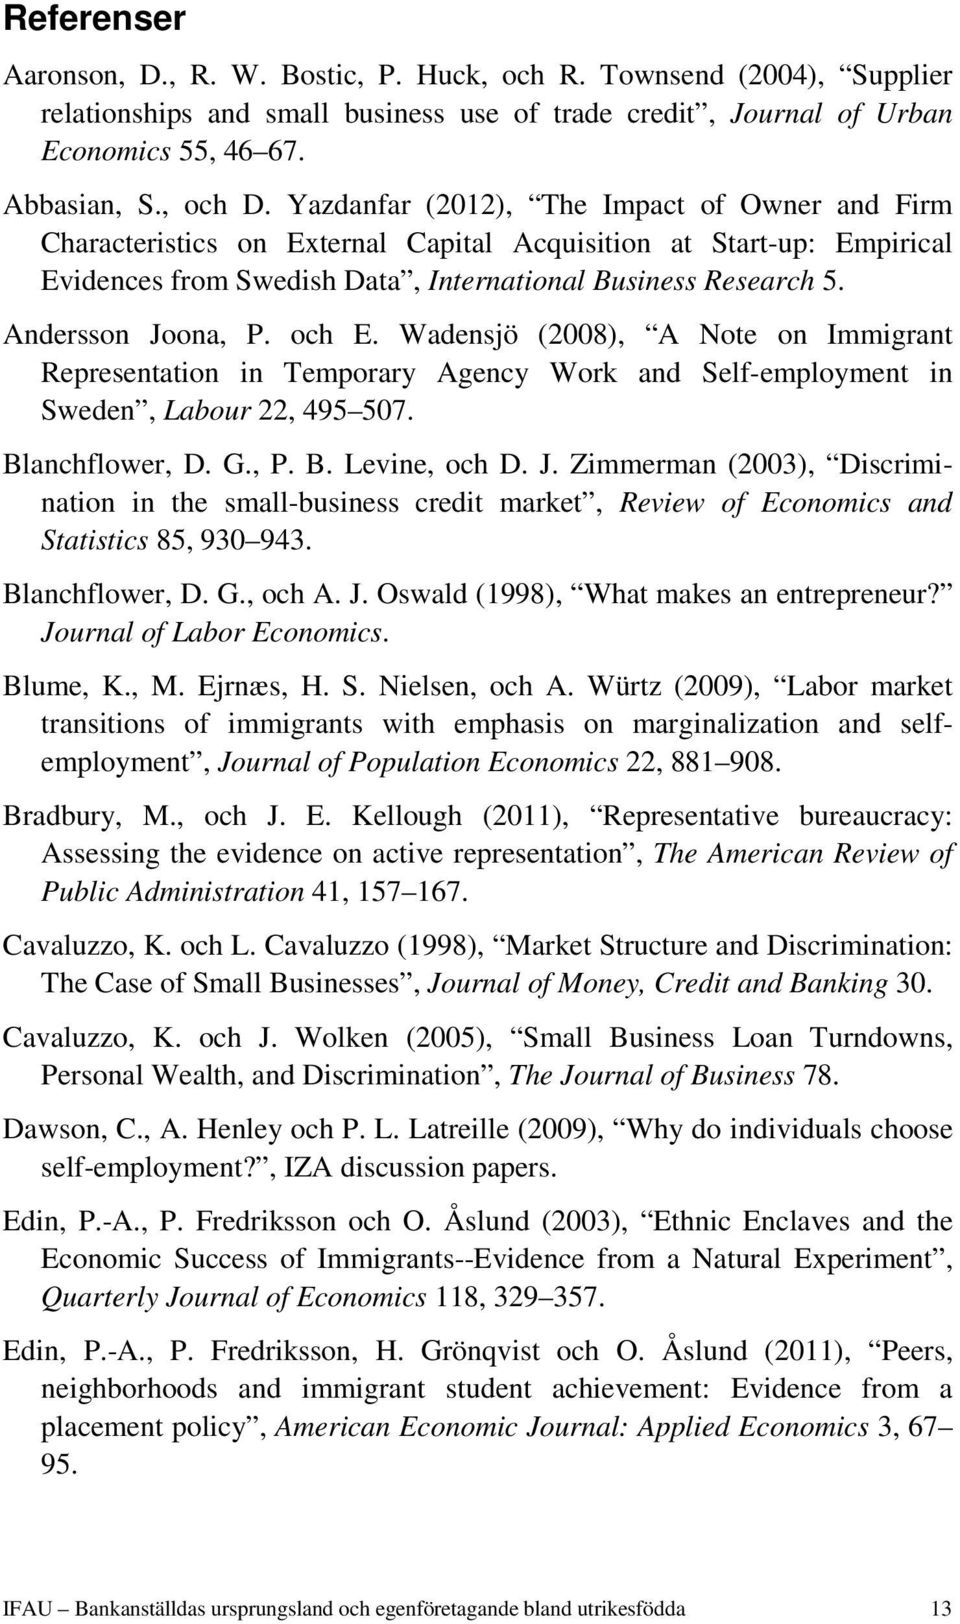 Andersson Joona, P. och E. Wadensjö (2008), A Note on Immigrant Representation in Temporary Agency Work and Self-employment in Sweden, Labour 22, 495 507. Blanchflower, D. G., P. B. Levine, och D. J. Zimmerman (2003), Discrimination in the small-business credit market, Review of Economics and Statistics 85, 930 943.